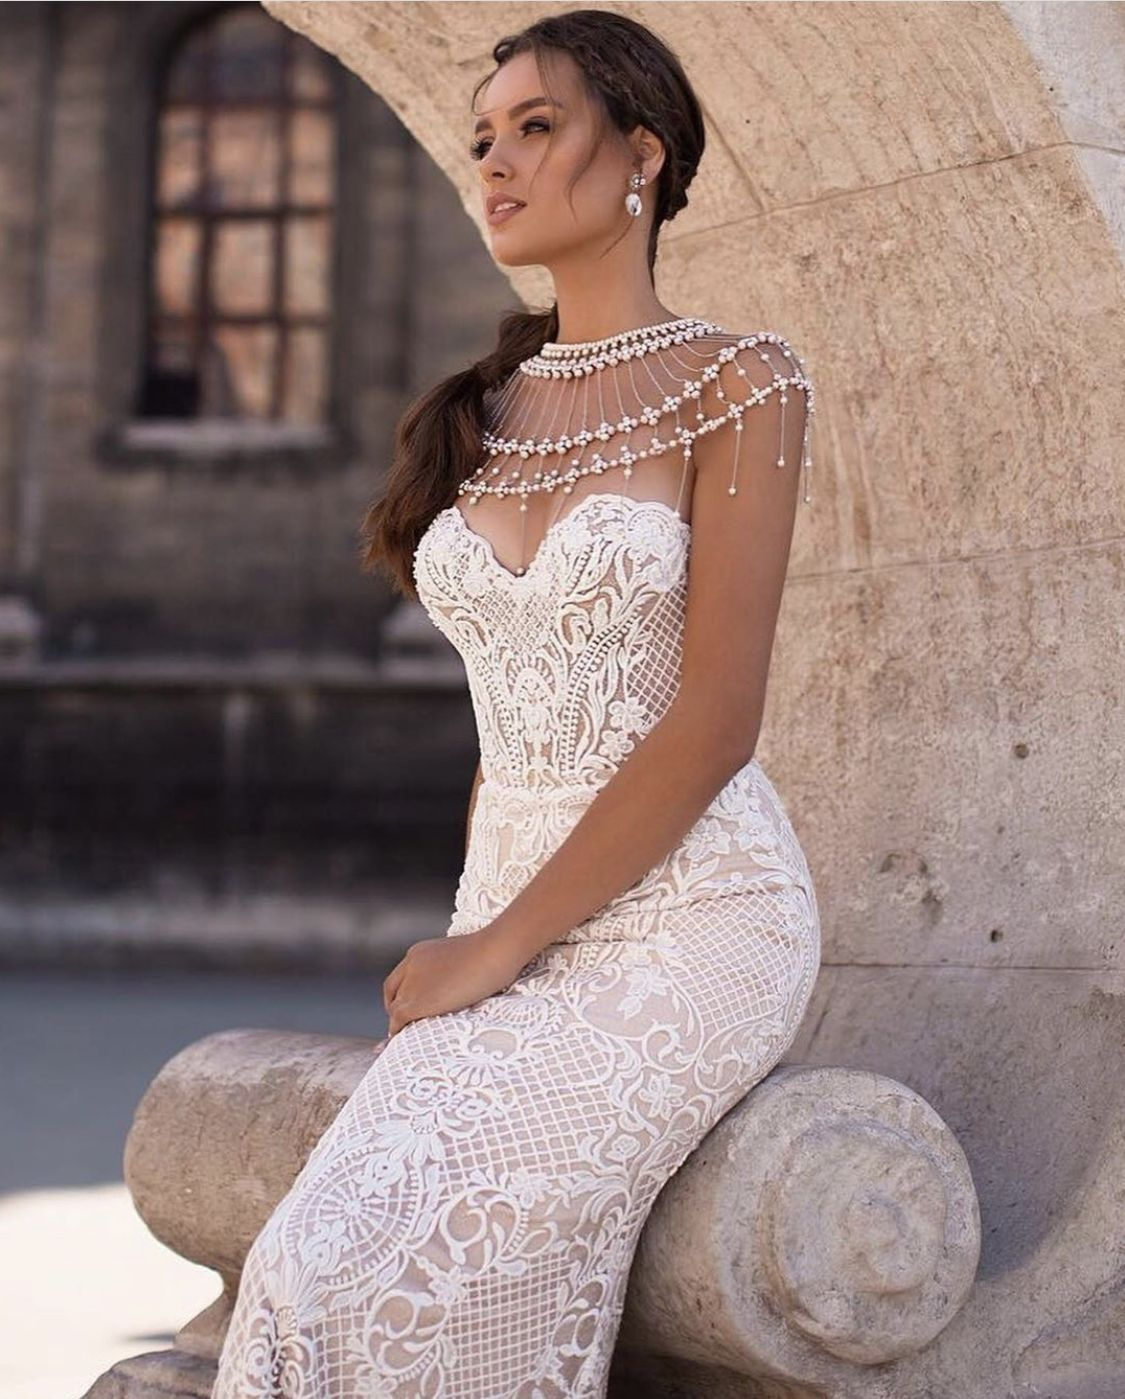 Pin by Roxy on One day Dresses, Bridal gowns, Bridal dresses